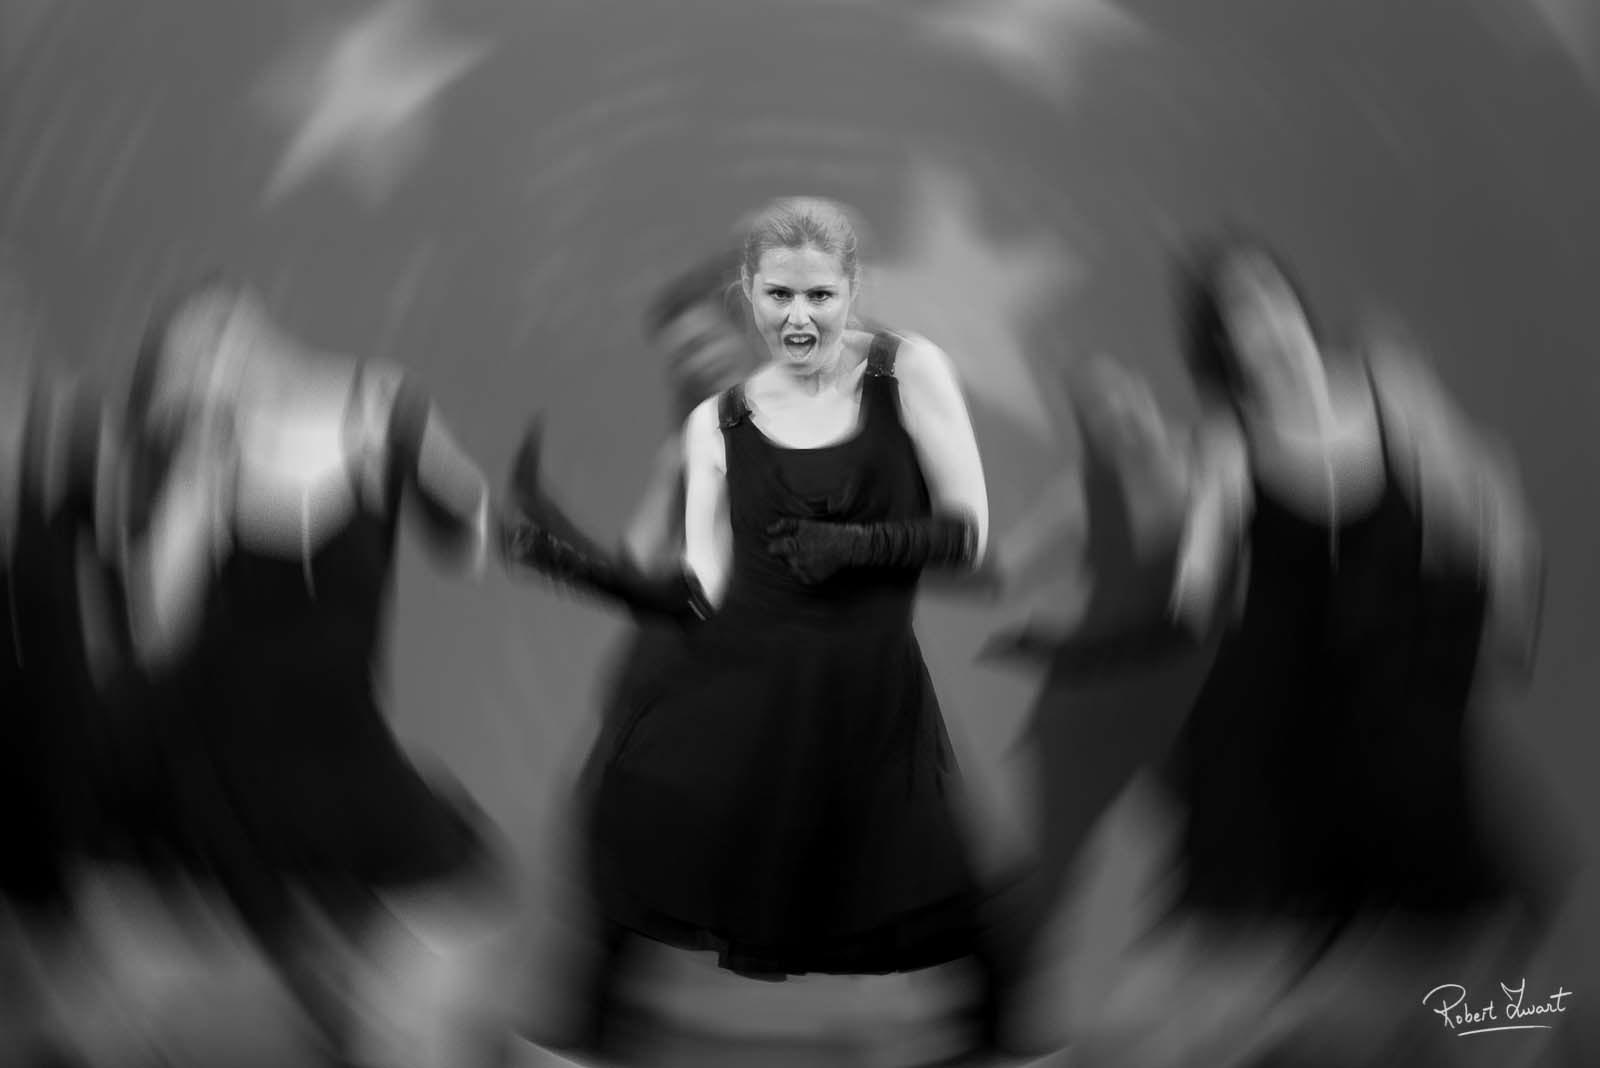 Dancephoto of a woman on stage with movement of the camera